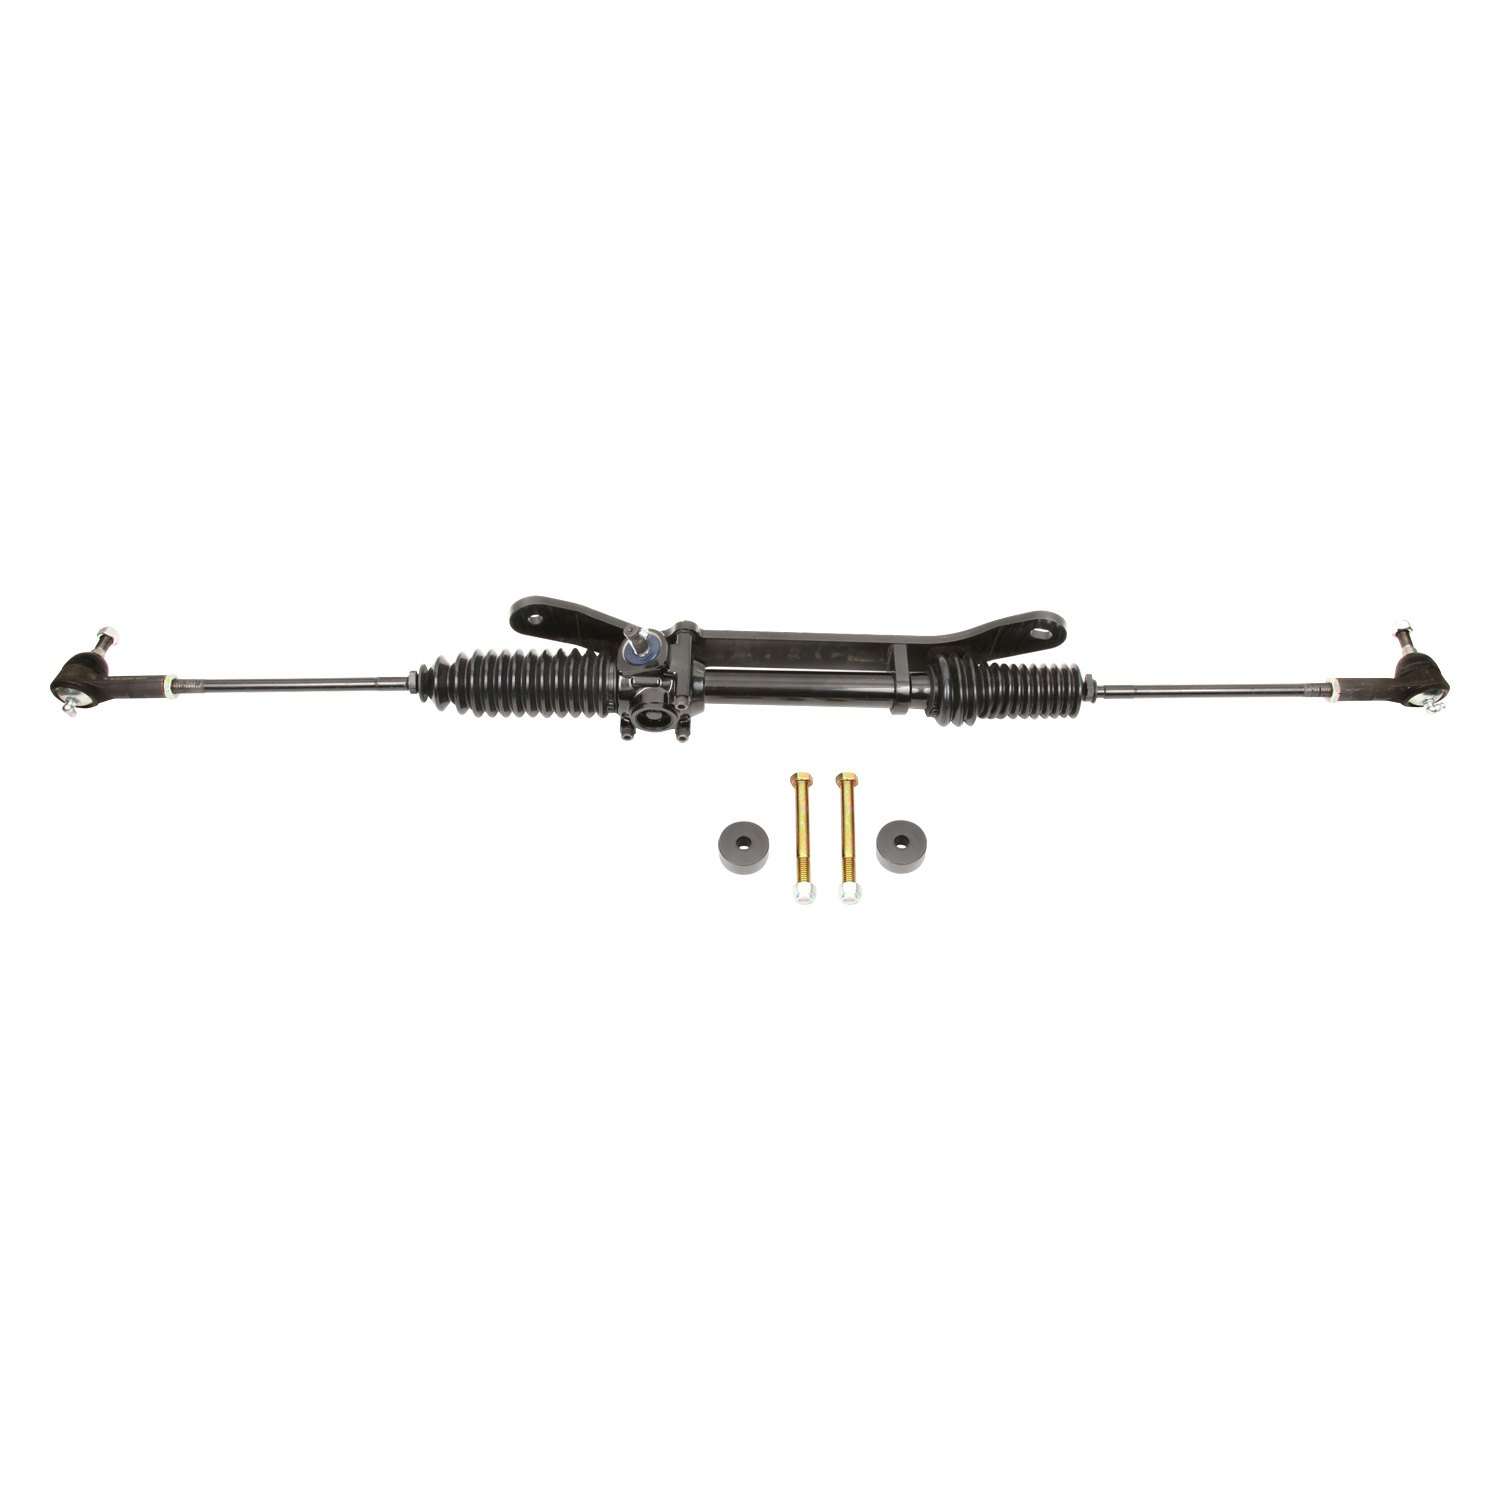 steering datsun pinion and rack zeddsaver collections bolts z nuts products